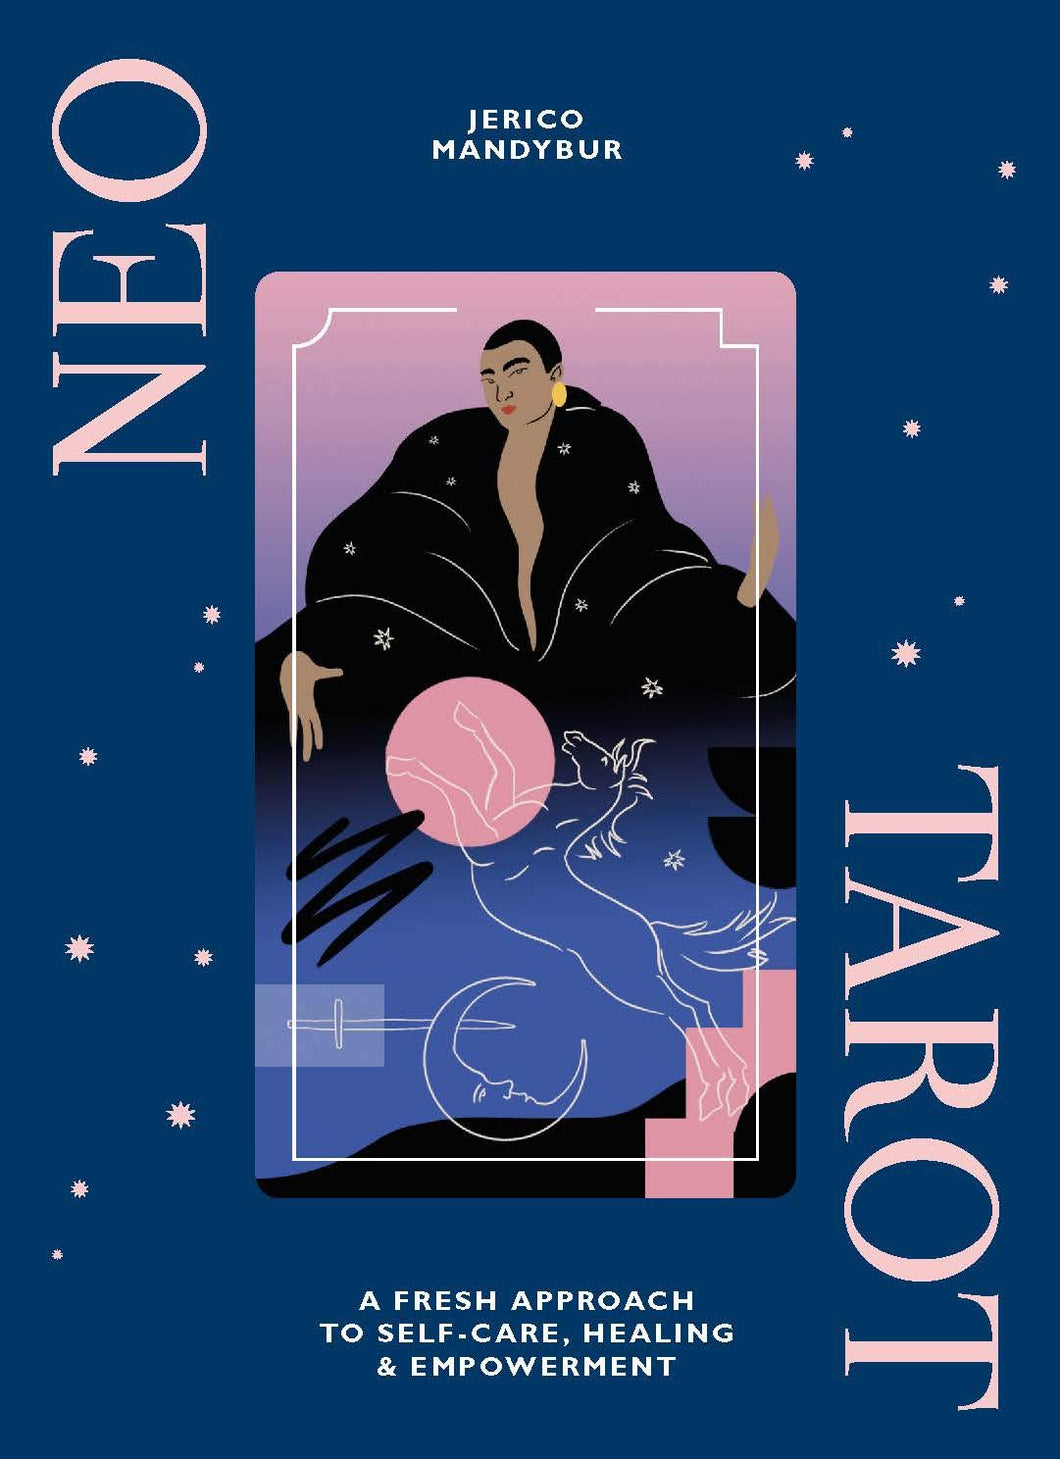 Neo Tarot: A fresh approach to self-care, healing & empowerment